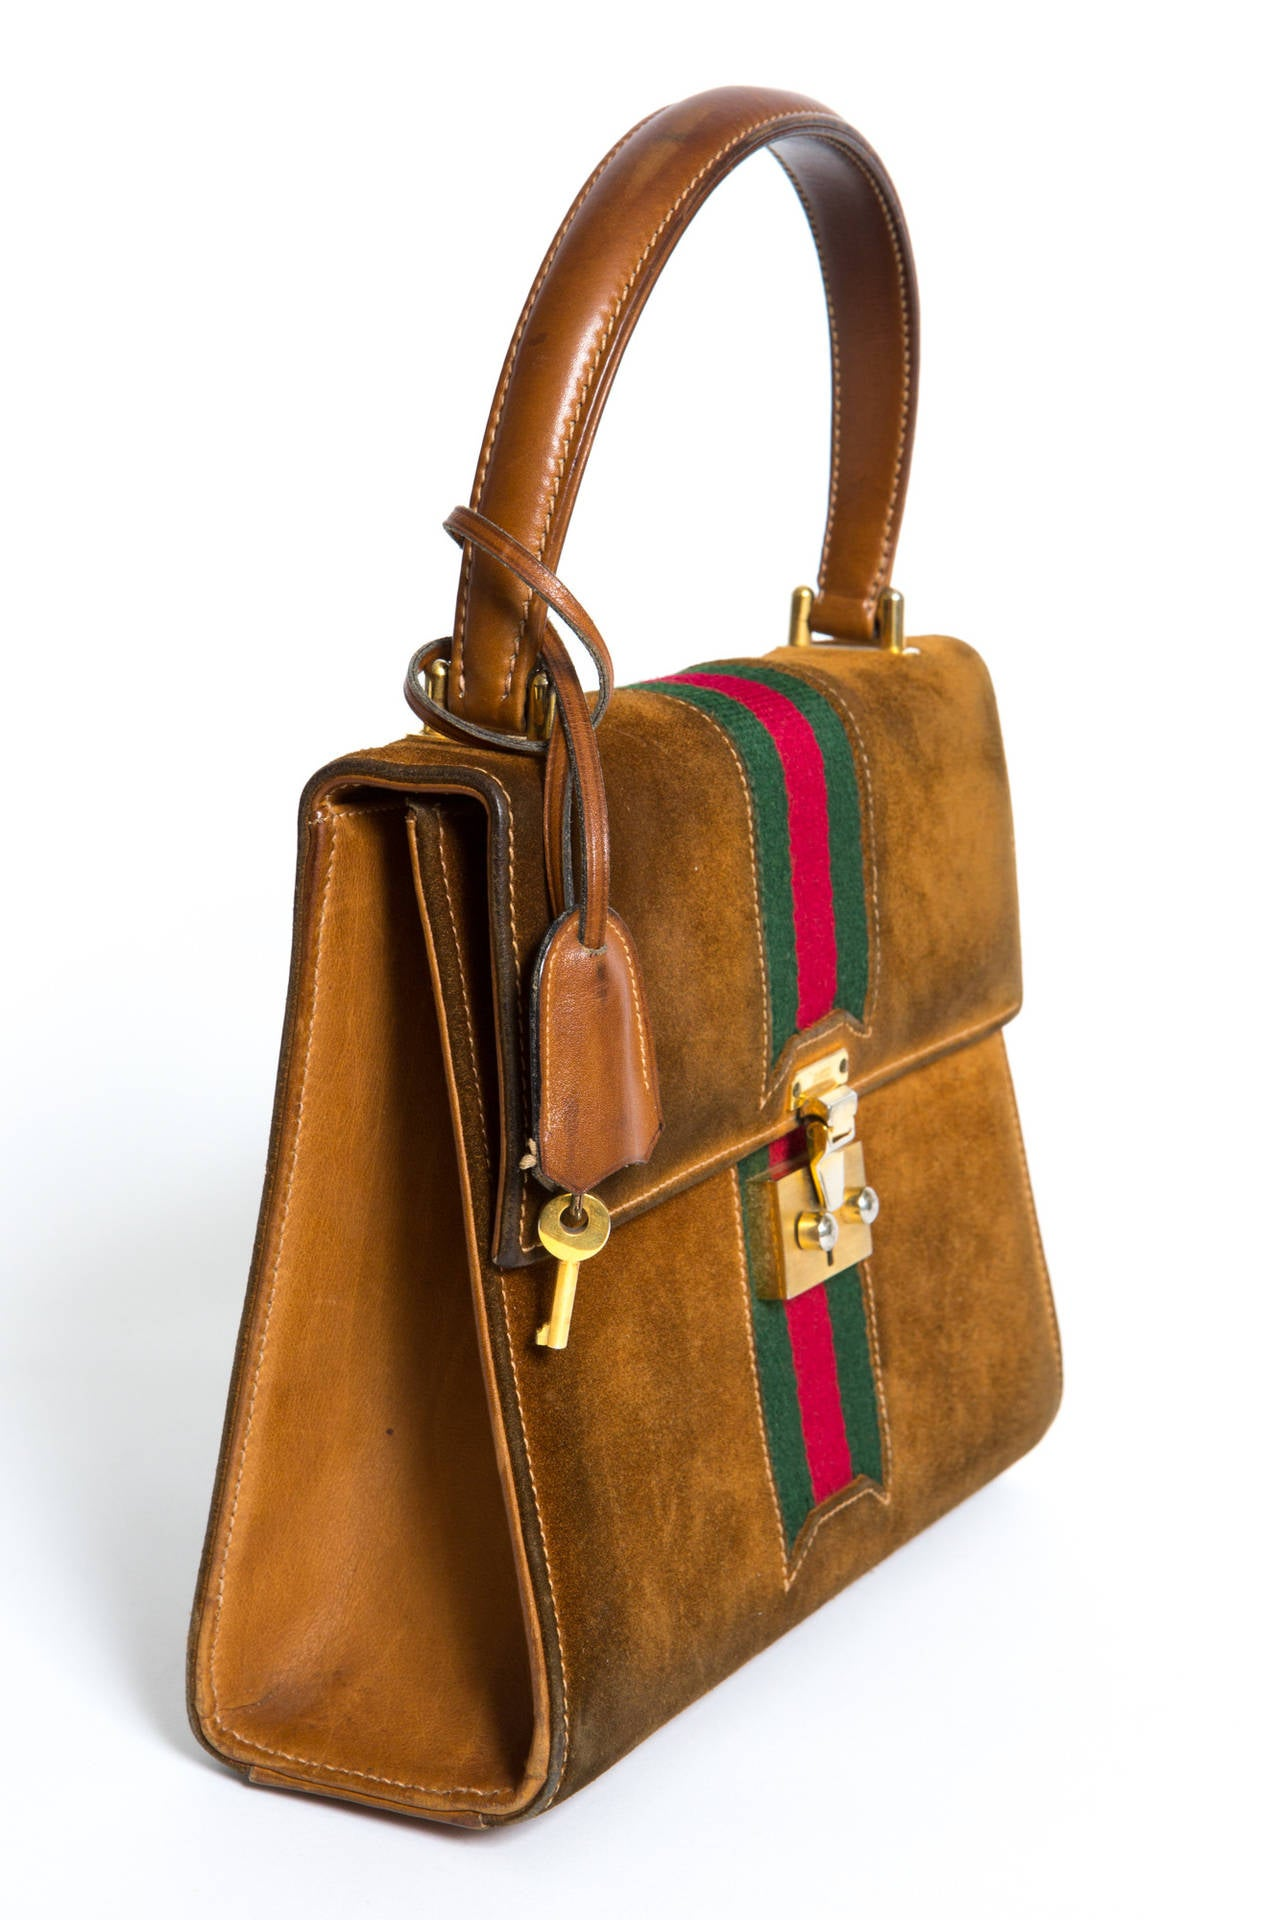 """1970 gorgeous & rare handle Gucci bag delivered in his original box, as an inspiration for the new season """"Spring 2016"""" Gucci collection (see photo). The bag is mixed suede and leather featuring a front lock gold tone hardware which comes with his"""